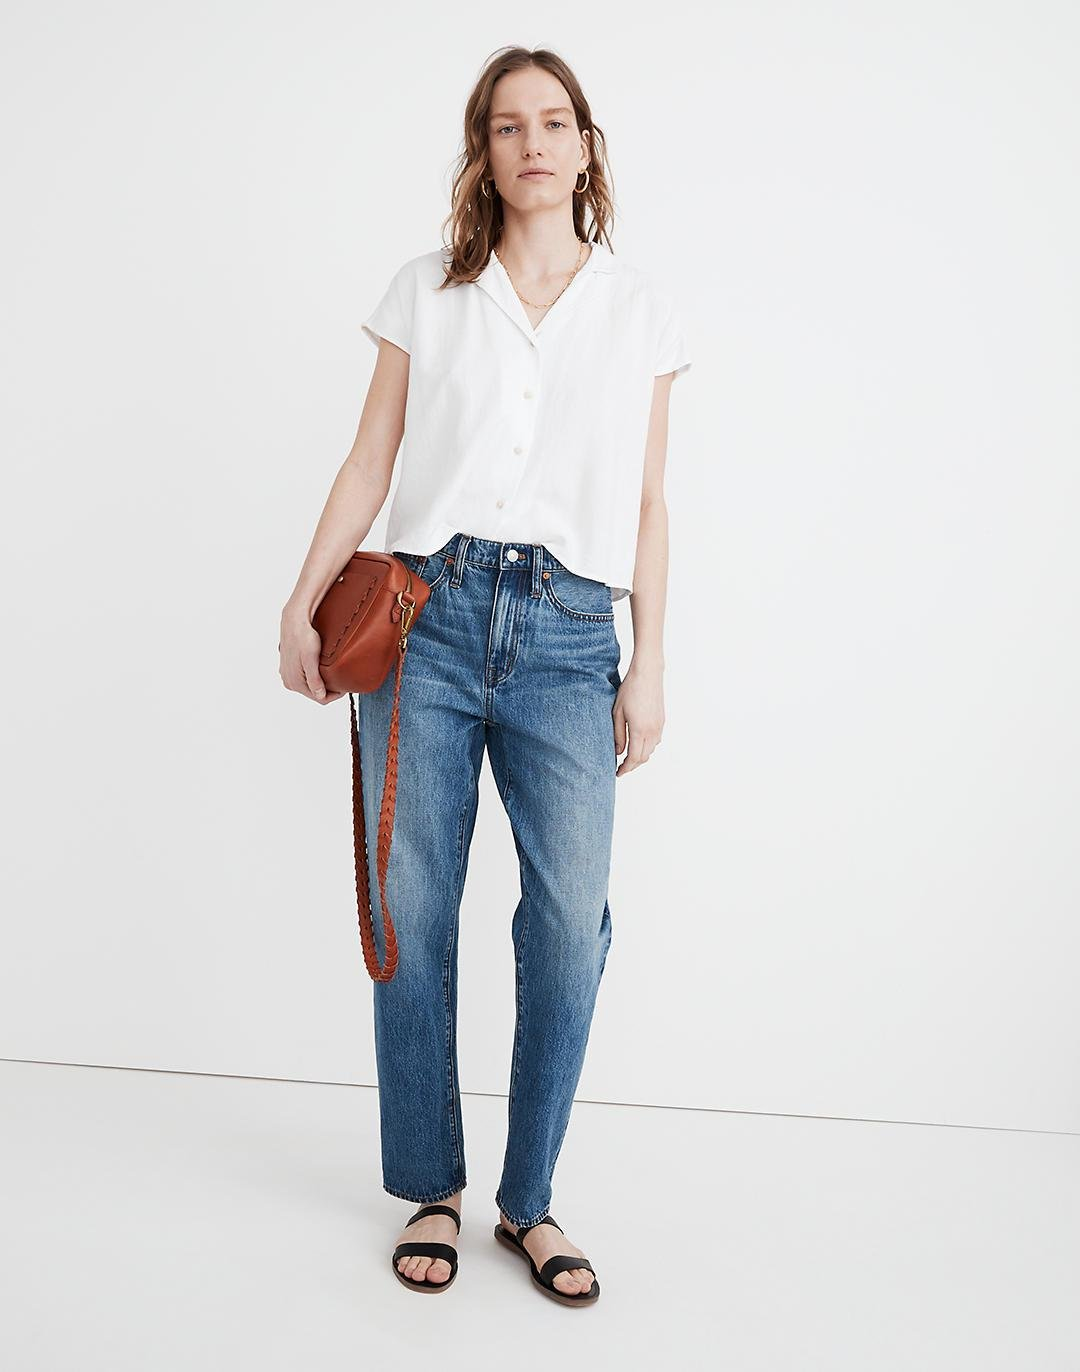 Relaxed Jeans in Sausalito Wash